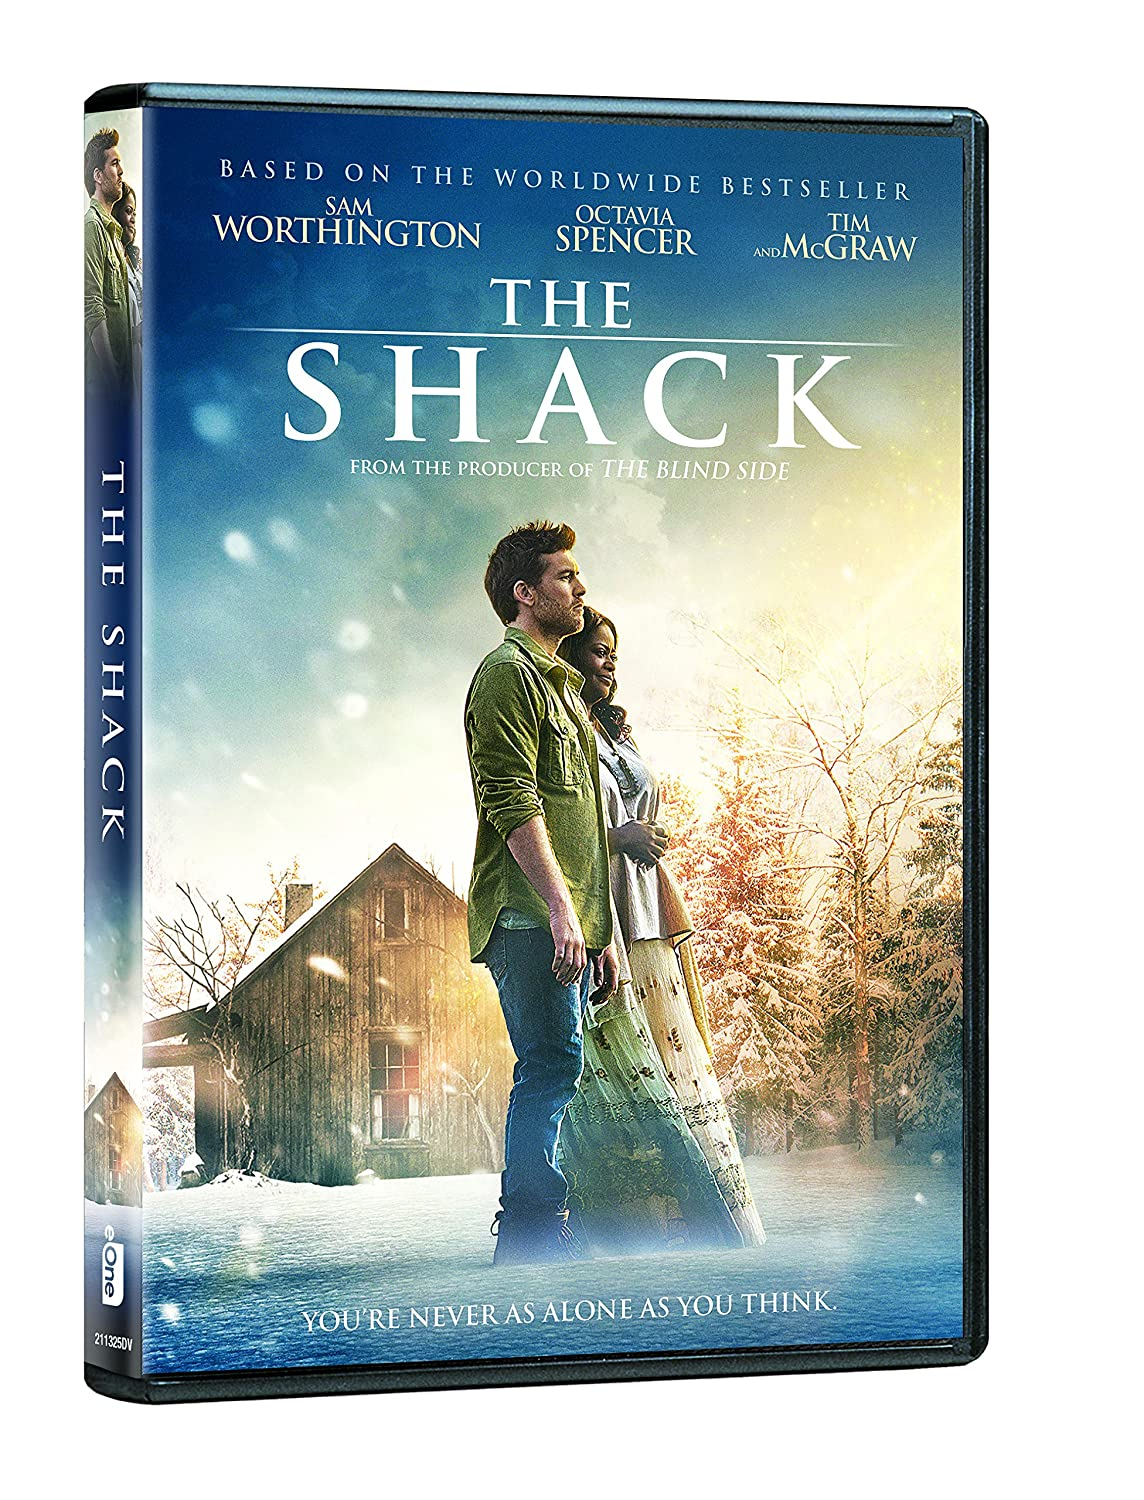 The Shack Sam Worthington Octavia Spencer eOne Stuart Hazeldine